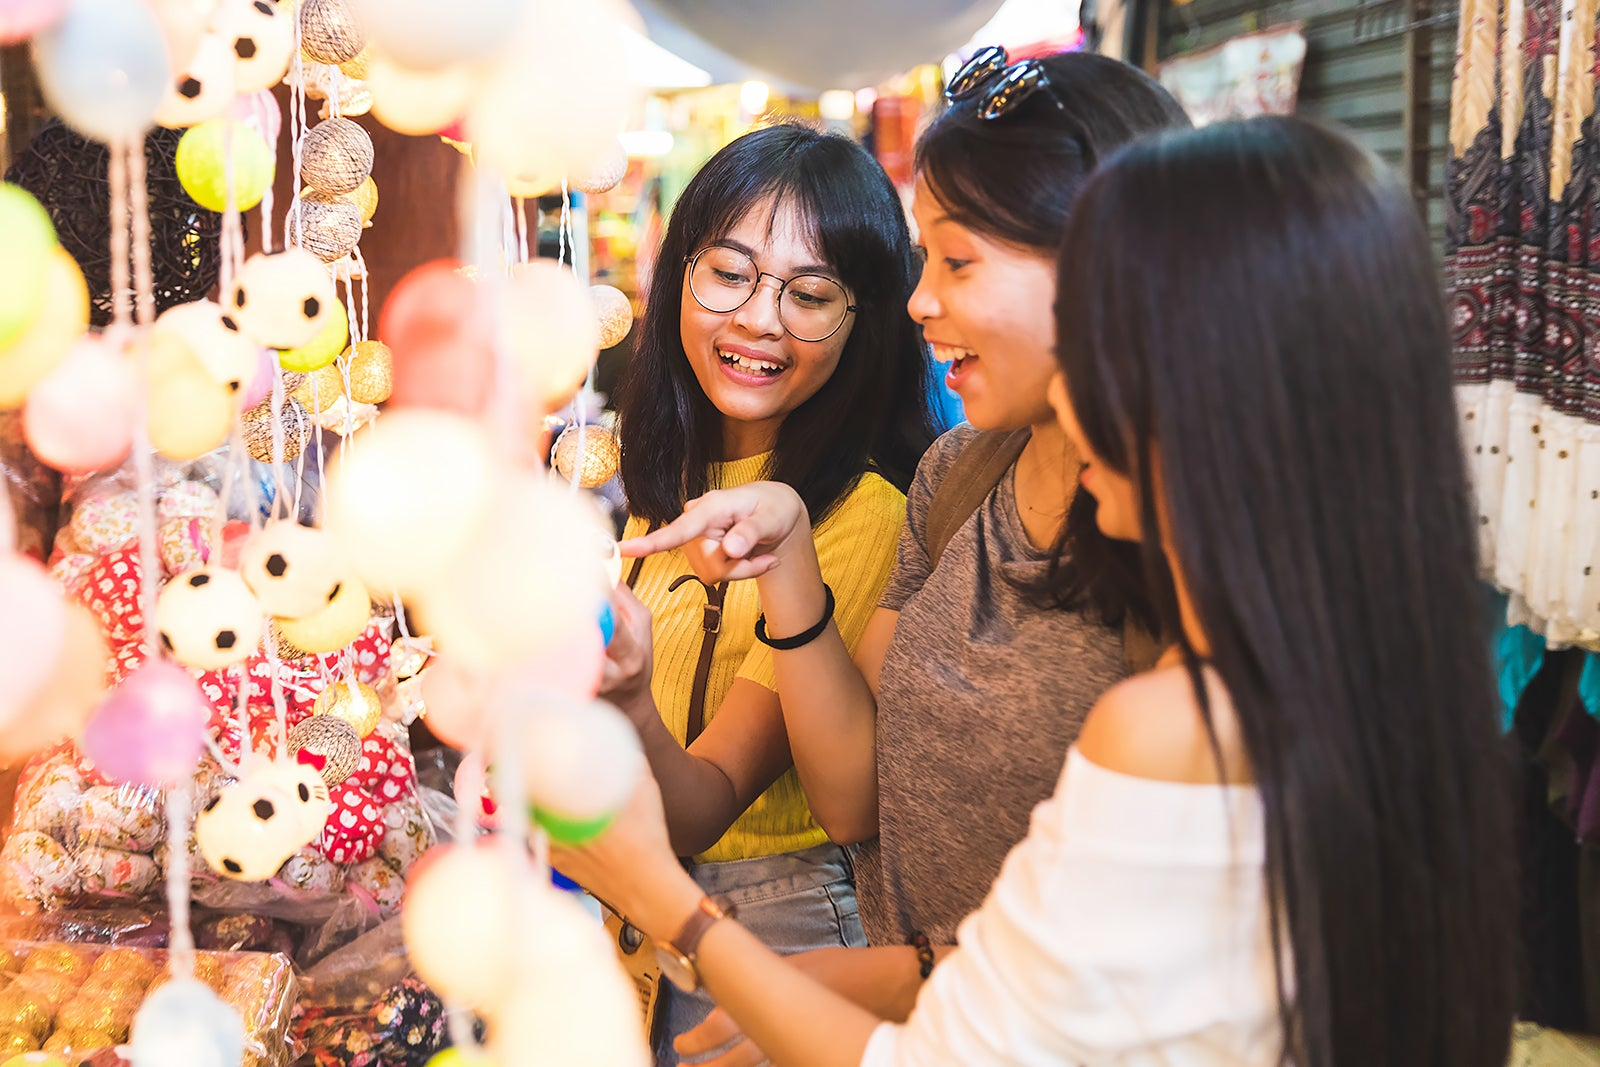 10 Best Places to Go Shopping in Pratunam - Where to Shop